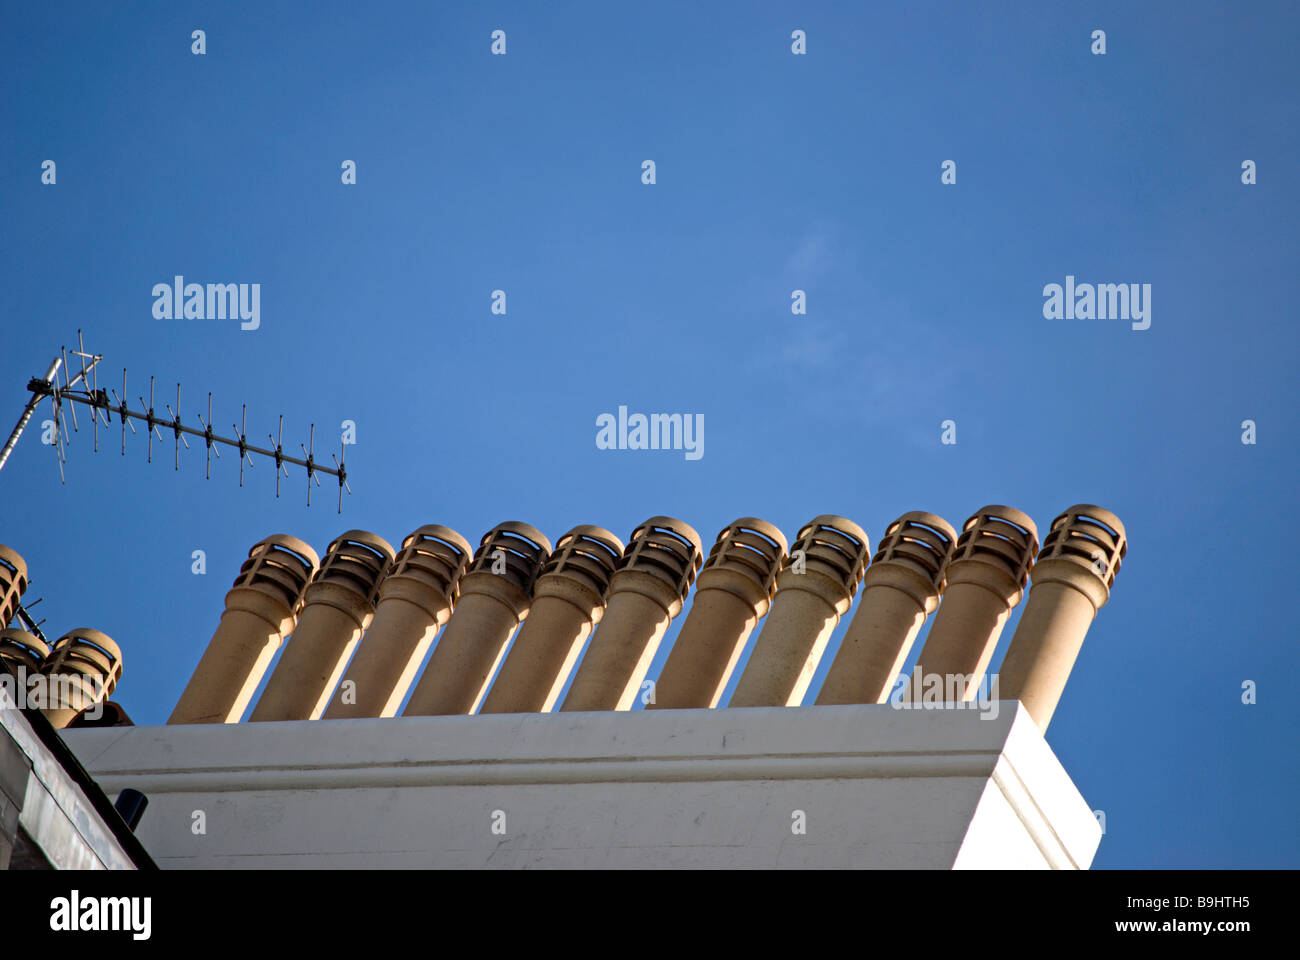 row of chimneys against a blue sky on a residential building near belgrave square, london, england - Stock Image